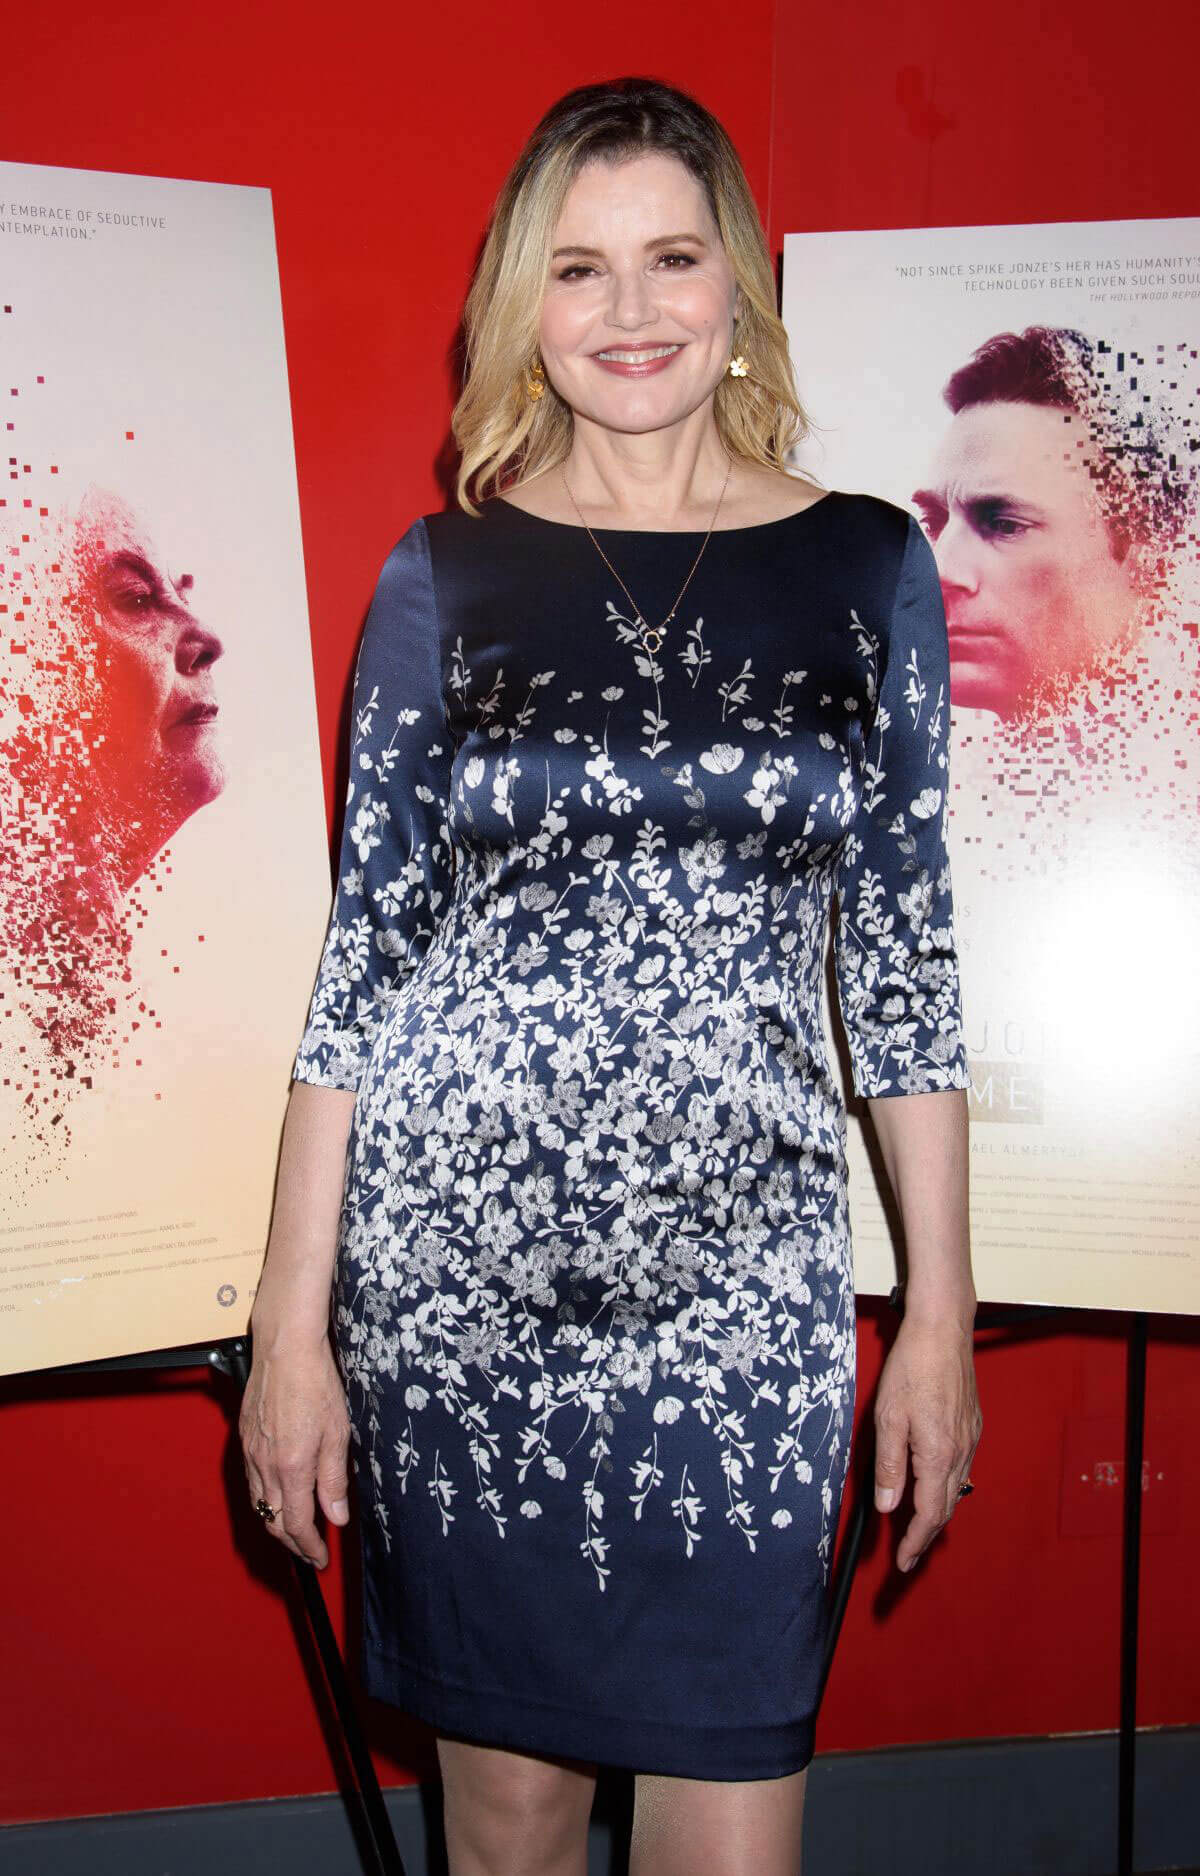 Geena Davis Stills at Marjorie Prime Premiere in New York